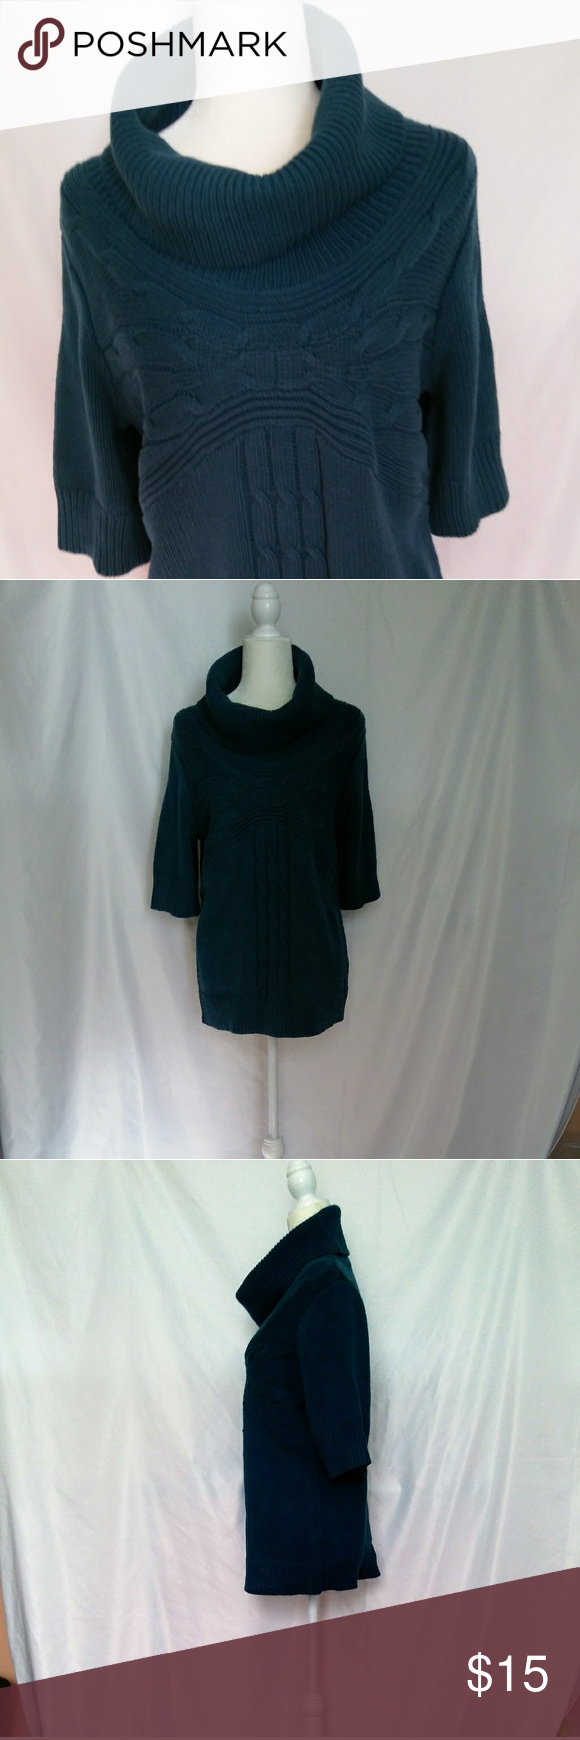 Apartment 9 Size Large Teal Sweater Apartment 9 Large Teal Sweater